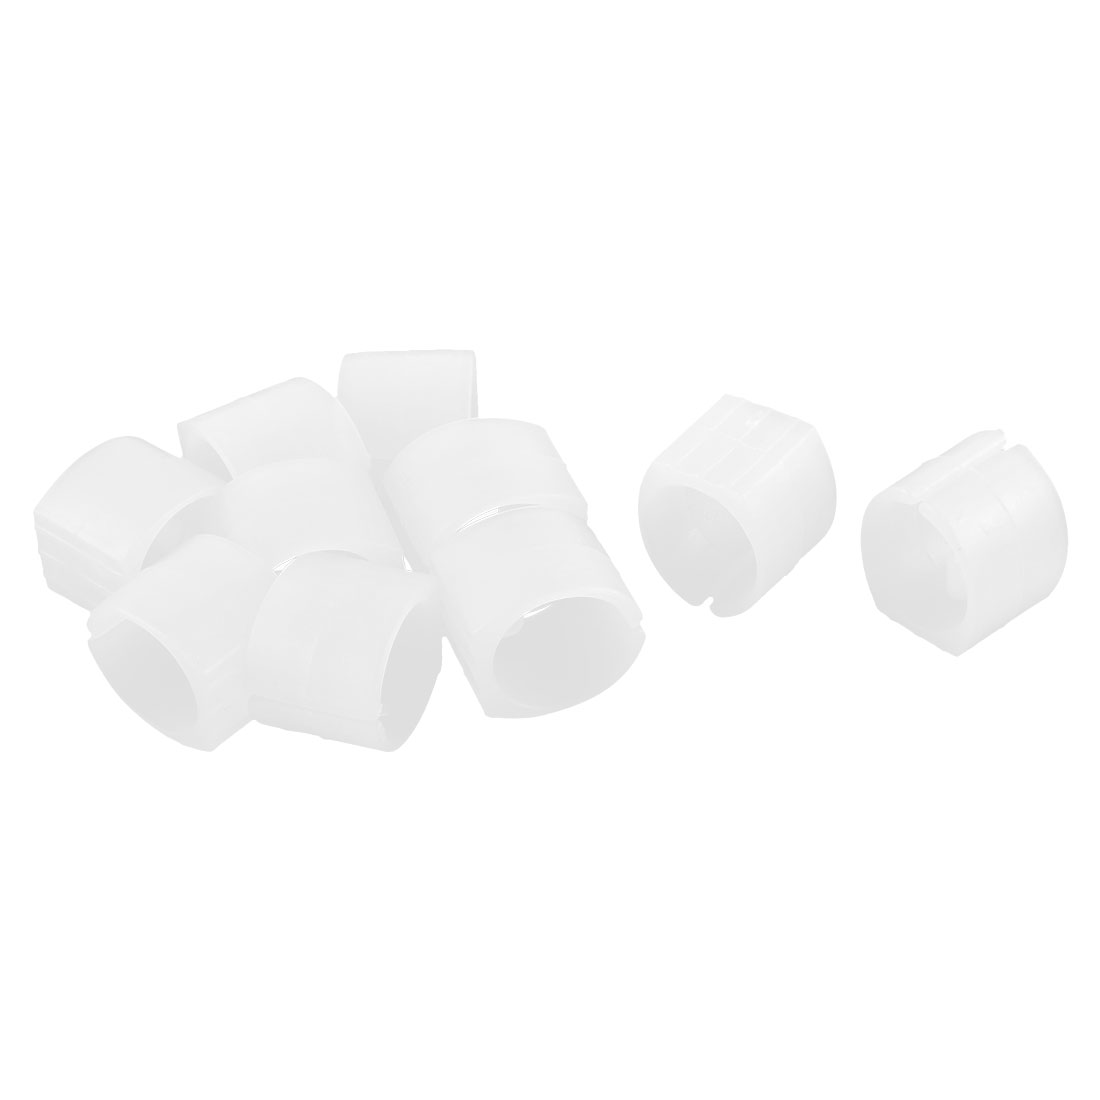 Home Chair Pipe Foot Clamp Pads Floor Glides U-shaped Caps White 20mm Dia 10pcs